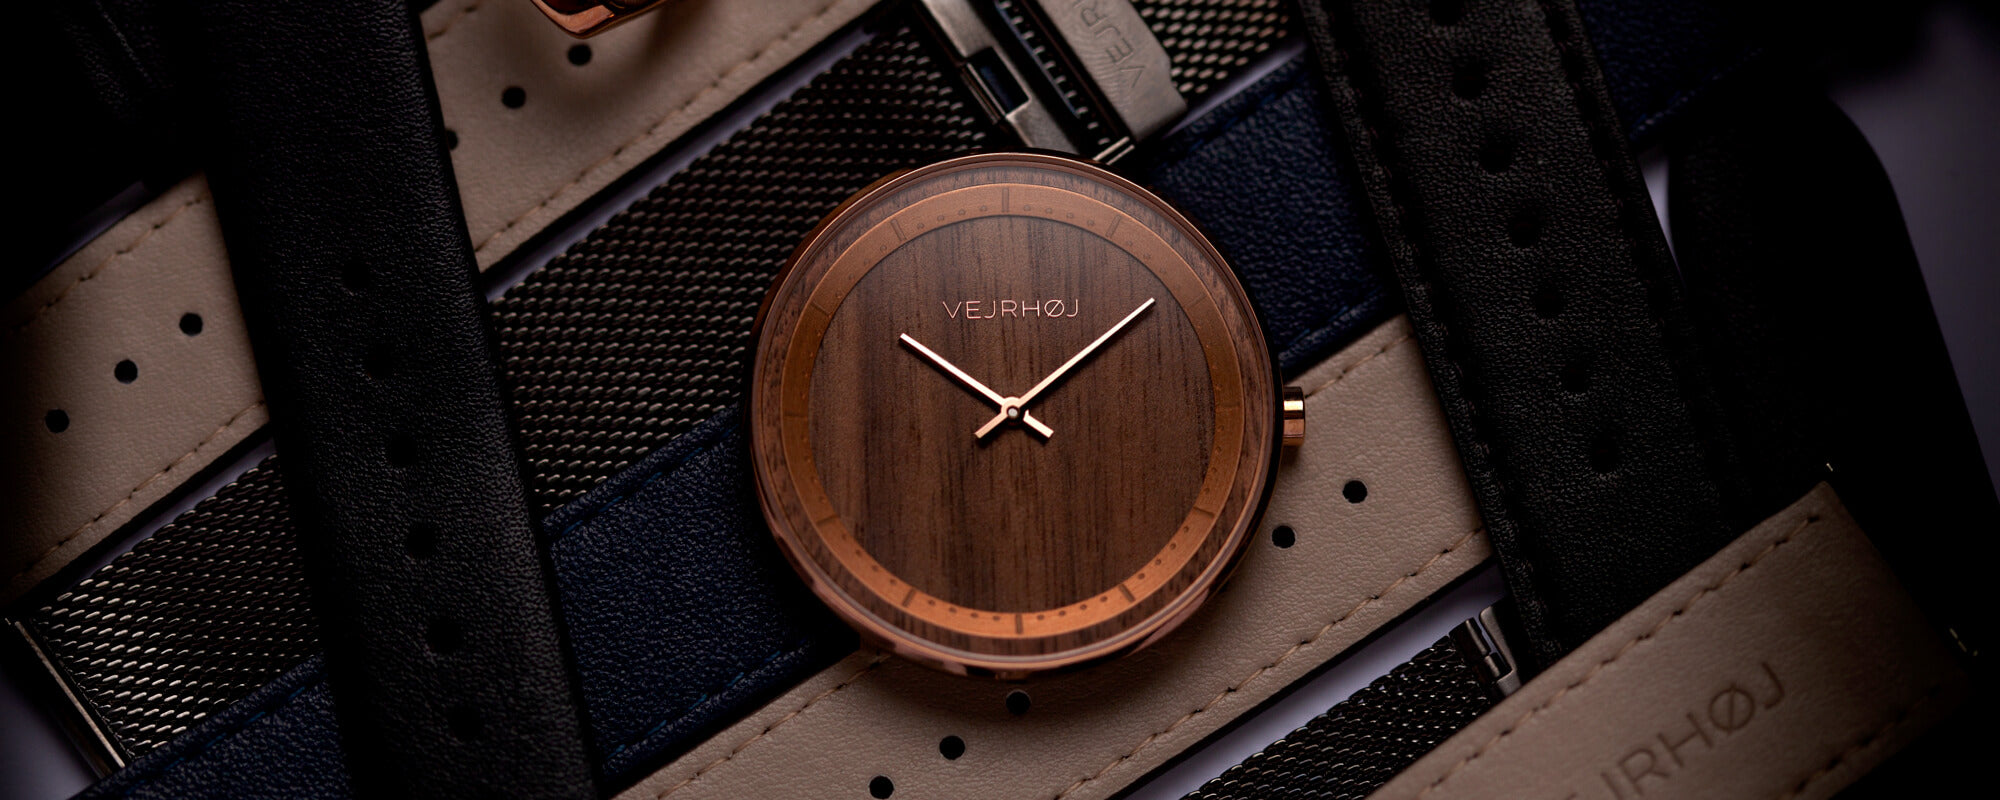 The rose wood watch